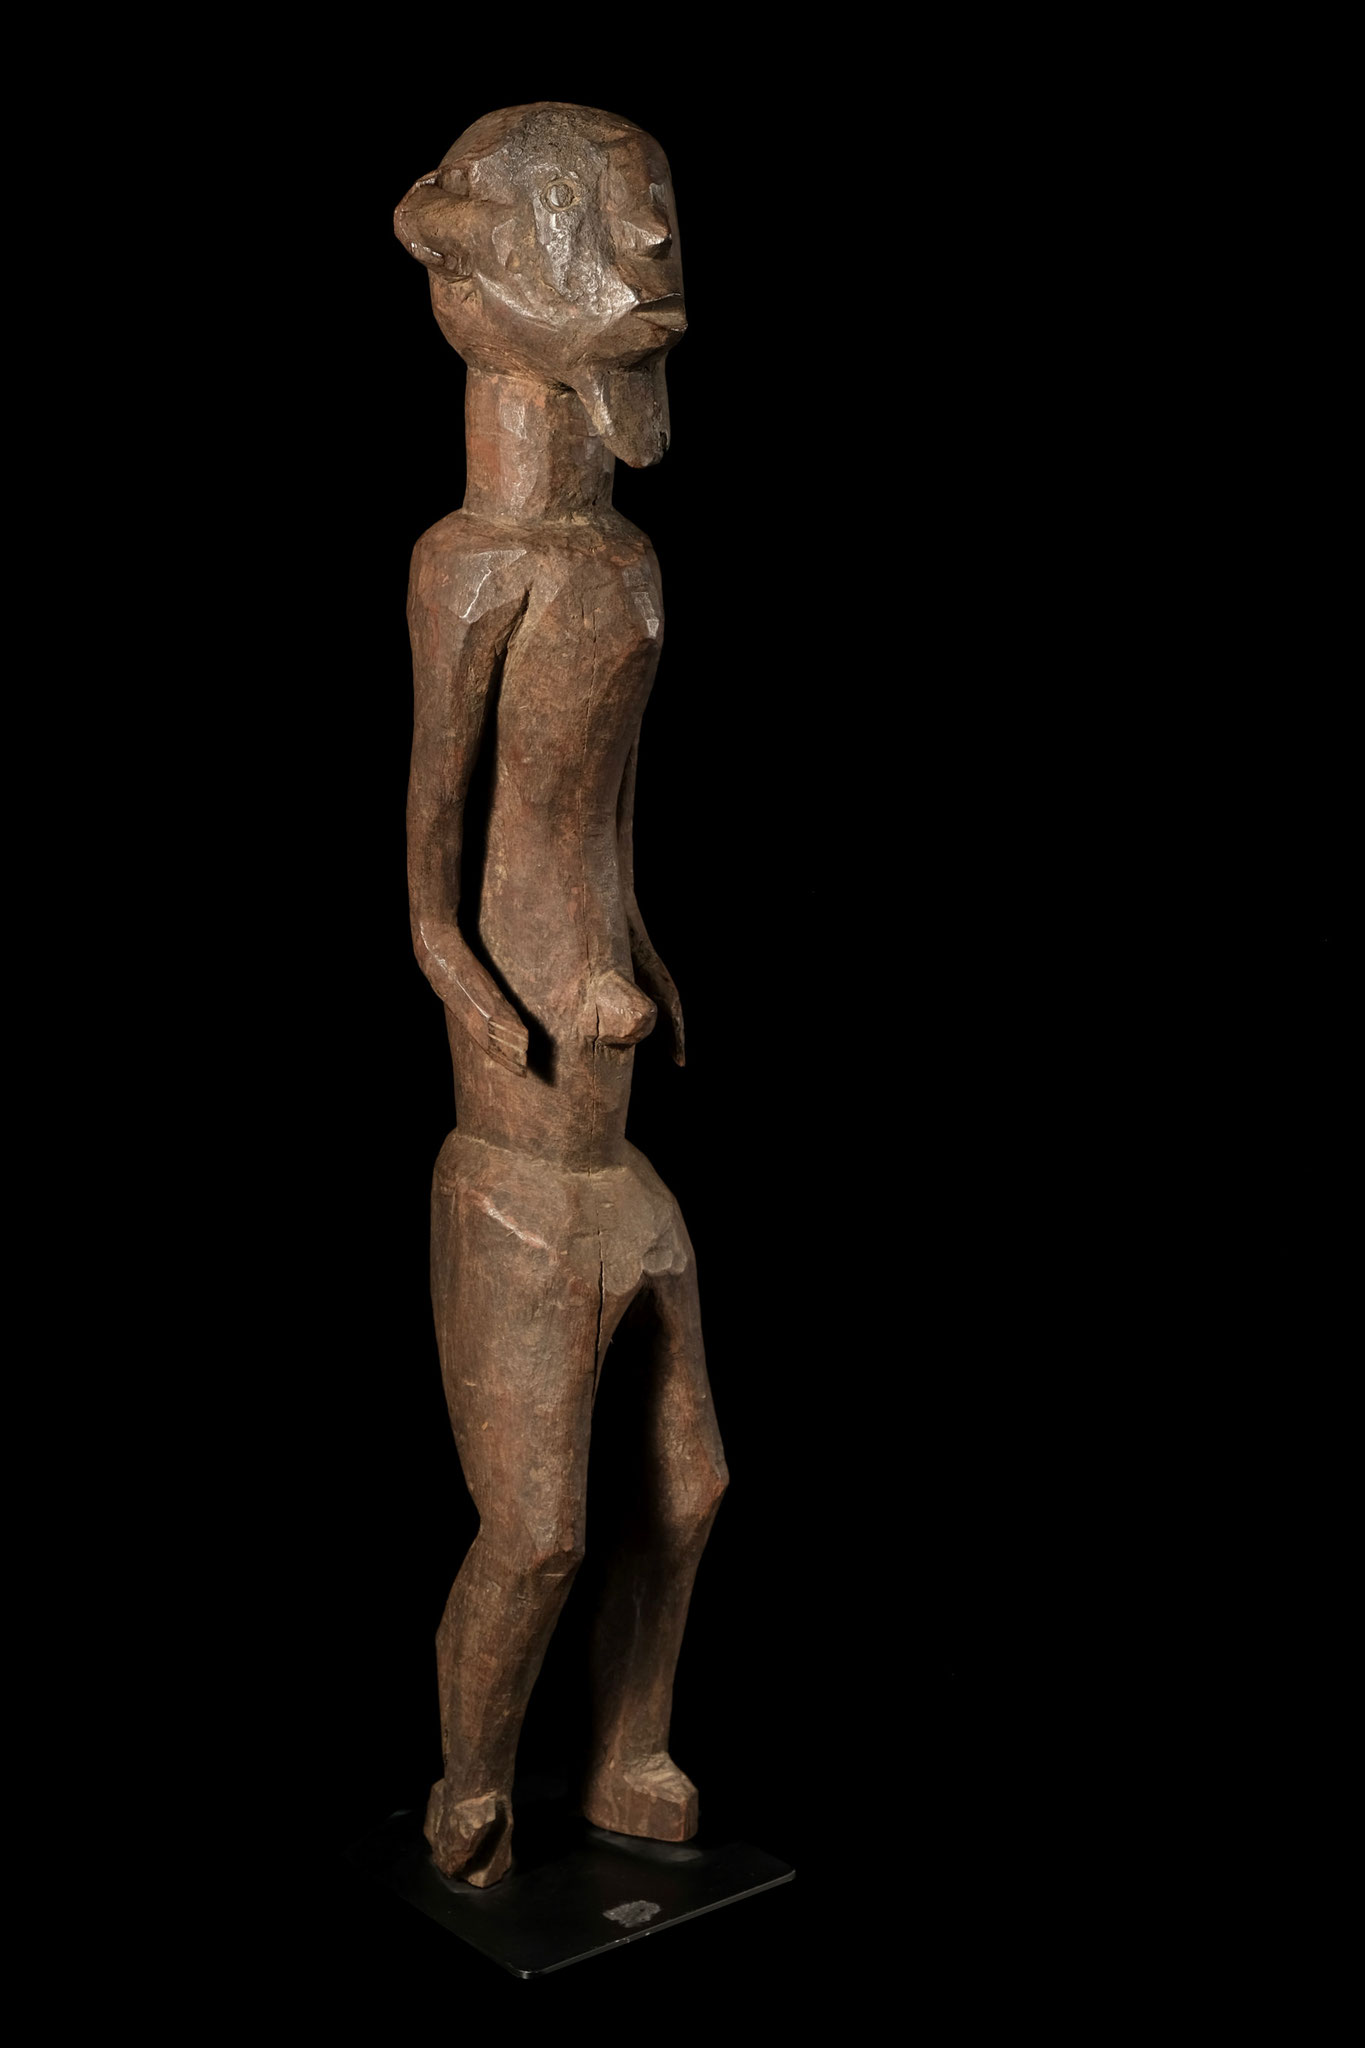 Longuda figure from Nigeria with archaic expression